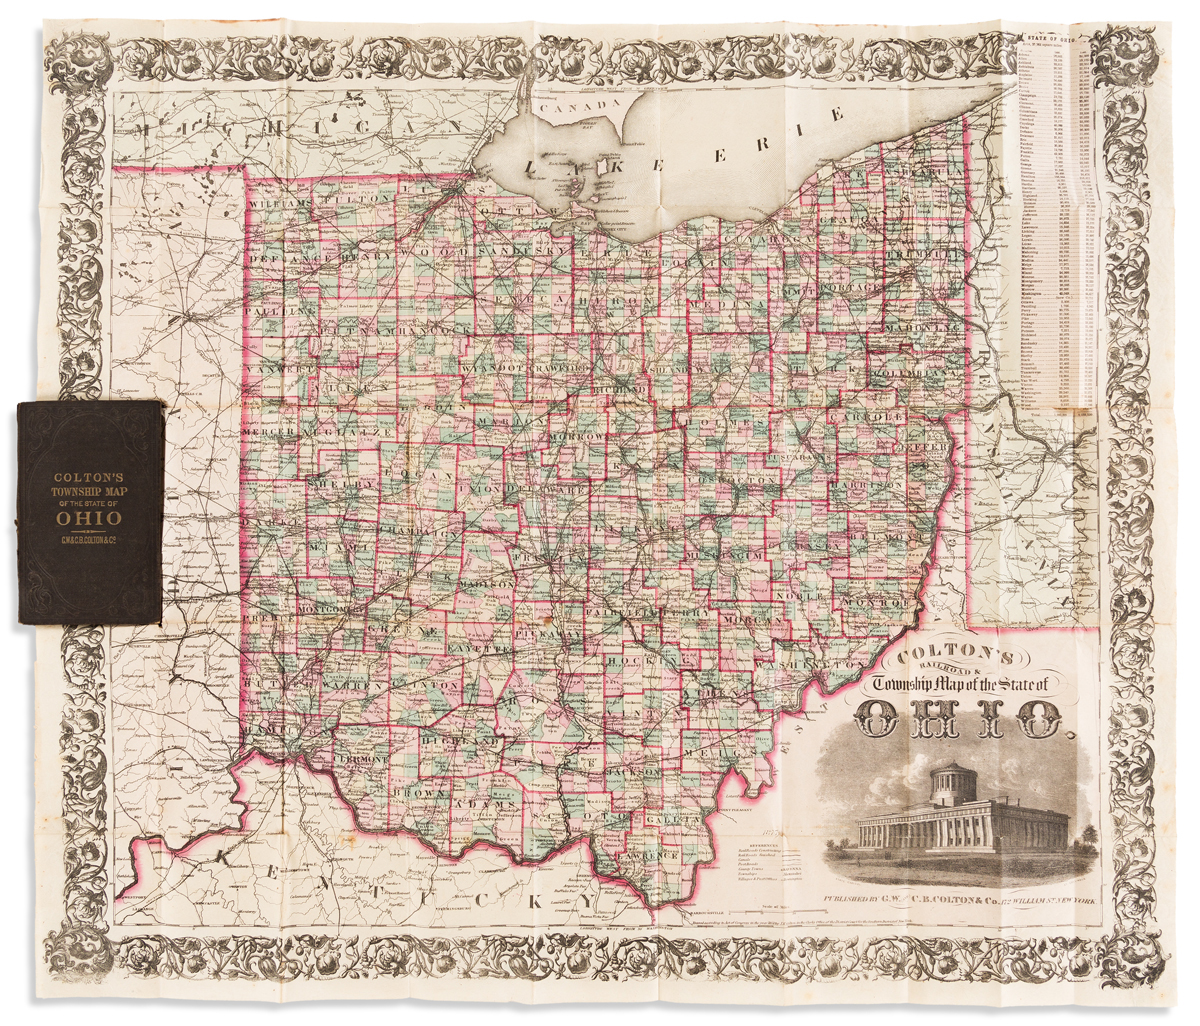 COLTON, G.W. & C.B. Coltons Railroad & Township Map of the State of Ohio.